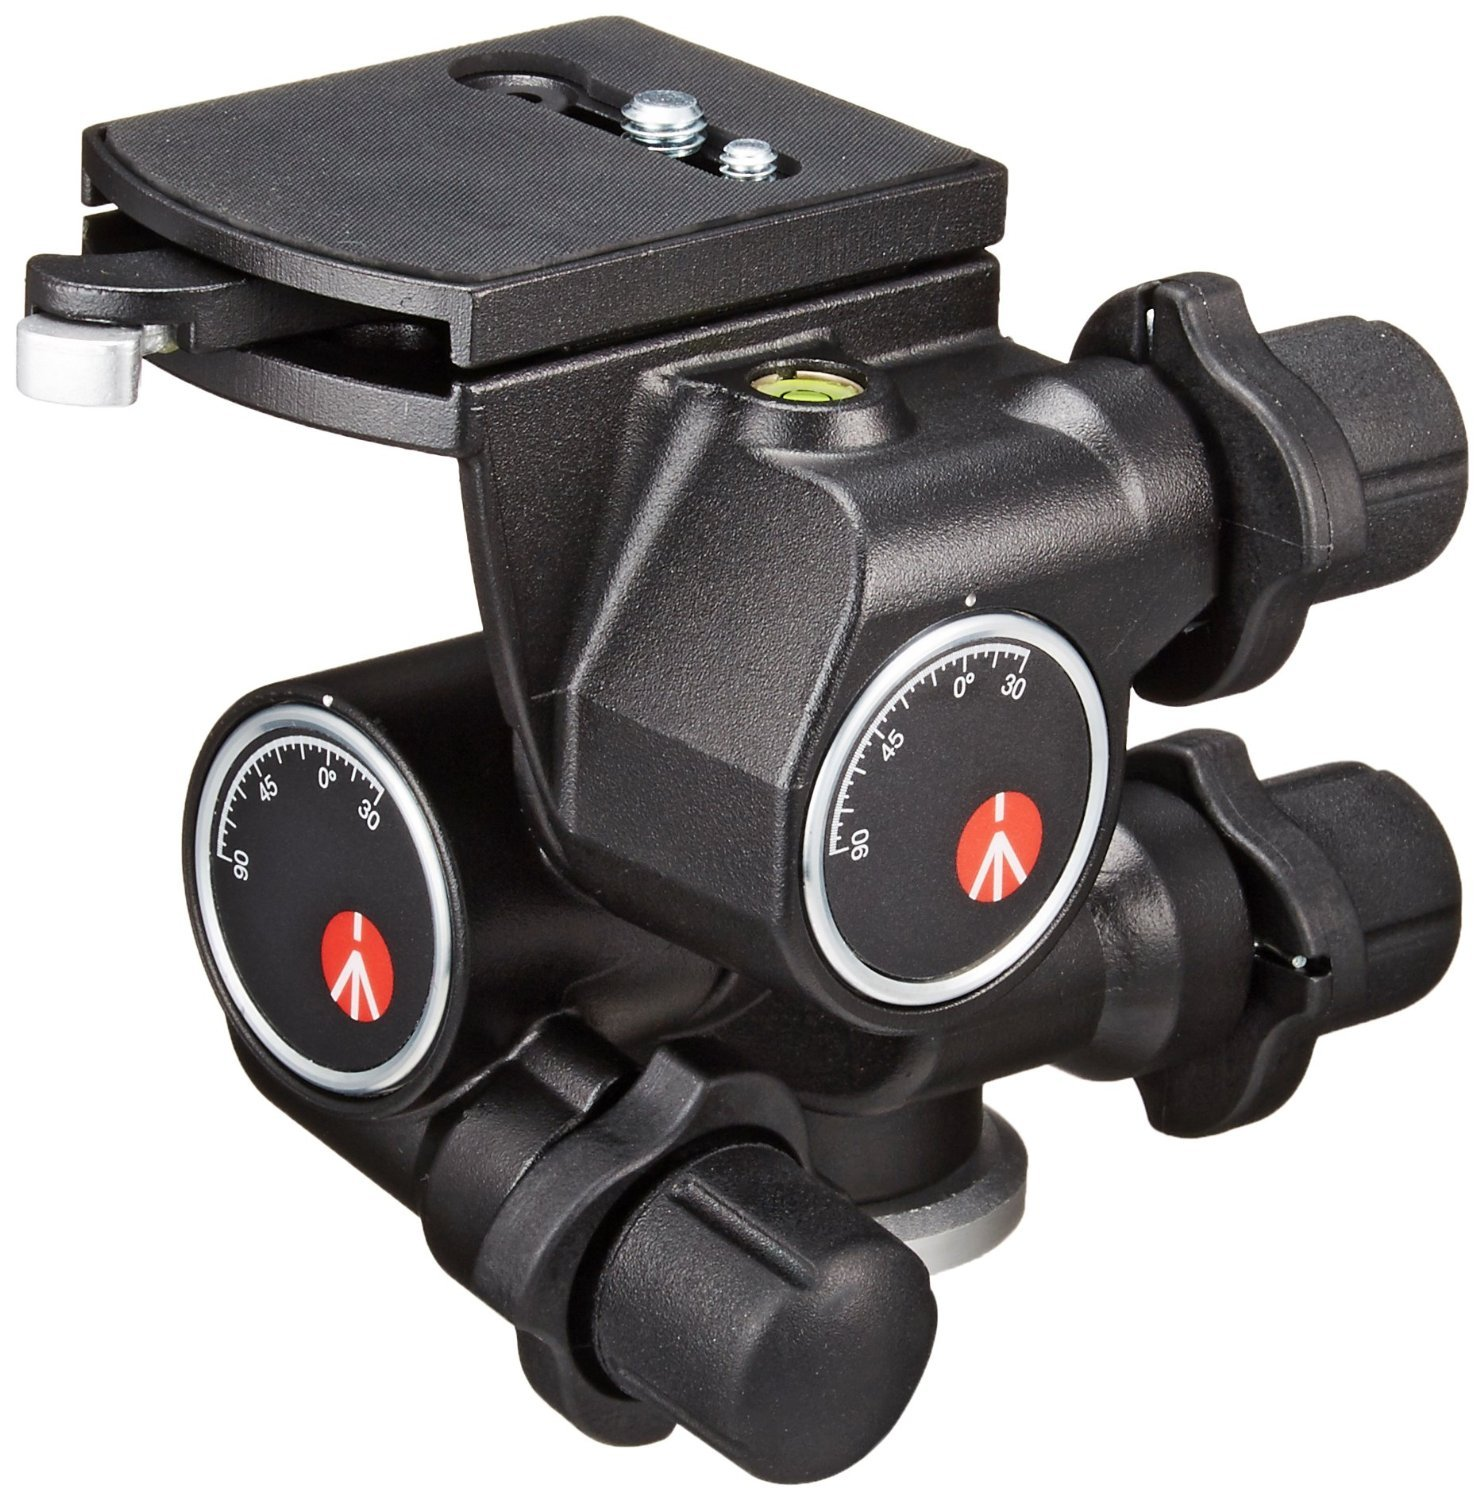 Manfrotto 410 Junior Geared Tripod Head with Quick Release and a ZAYKIR Quick Release Plate by ZAYKIR (Image #2)